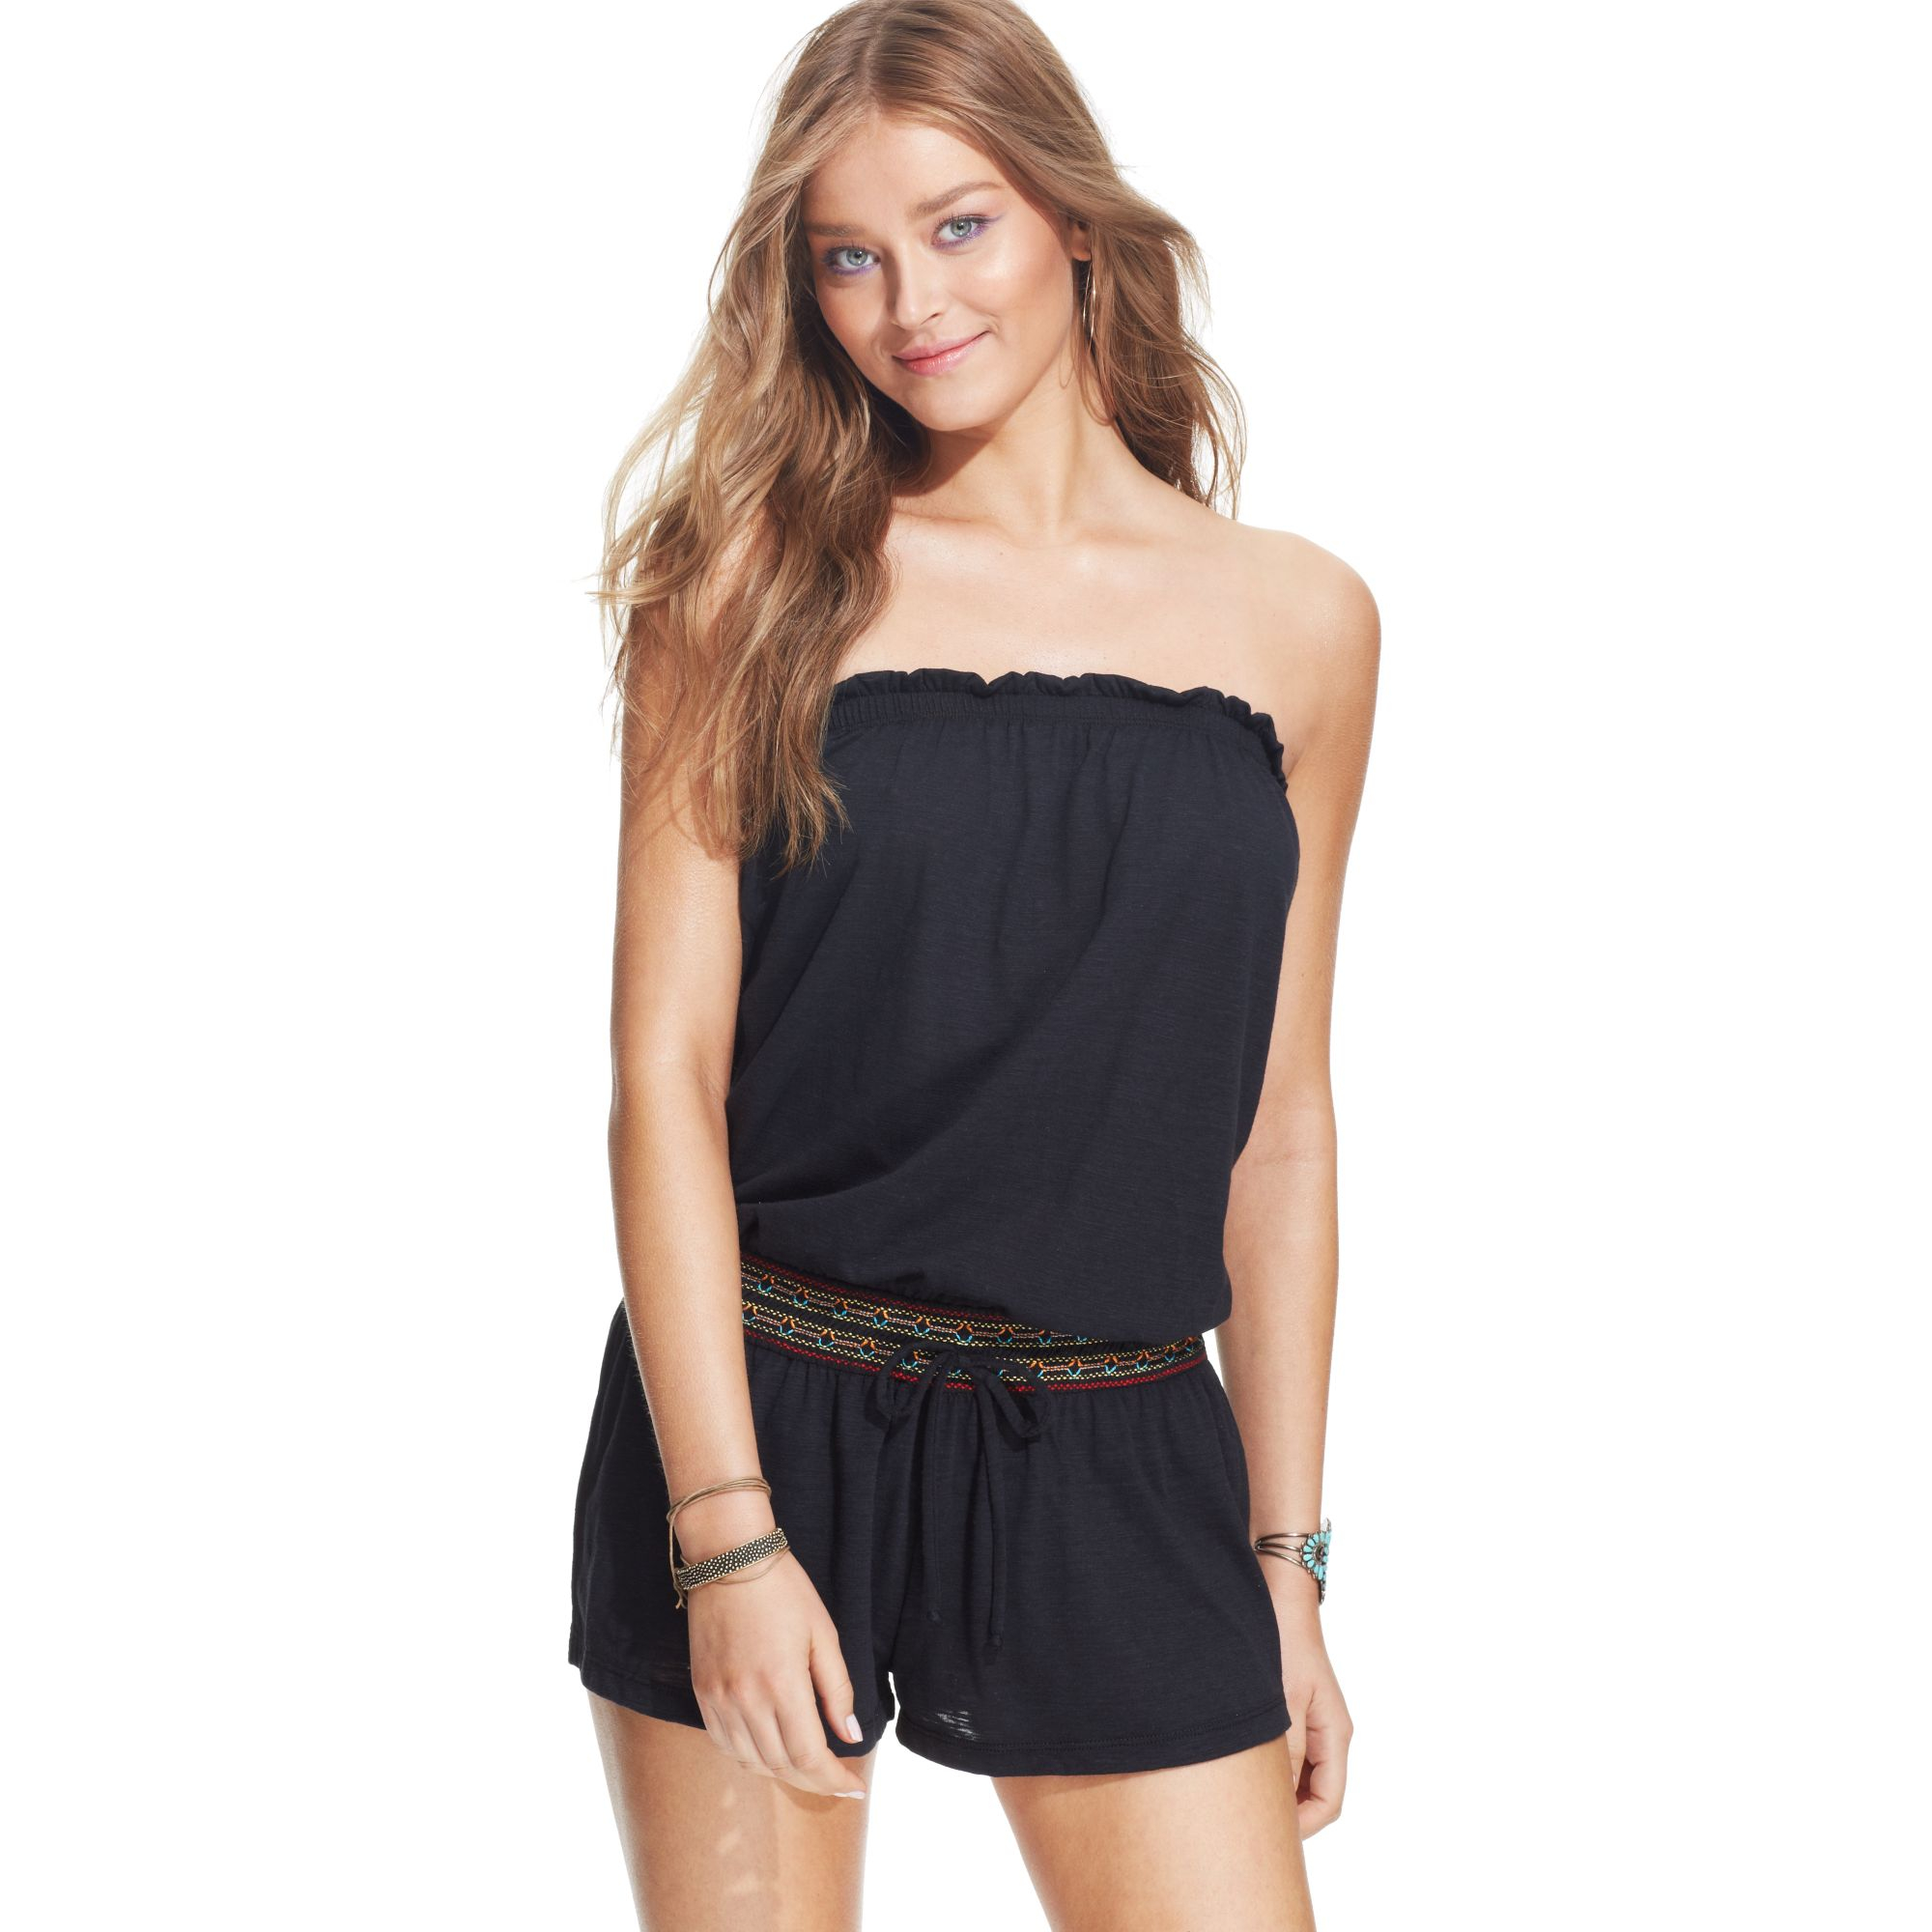 cb964ff4de Lucky Brand Sleeveless Bandeau Romper Cover Up in Black - Lyst